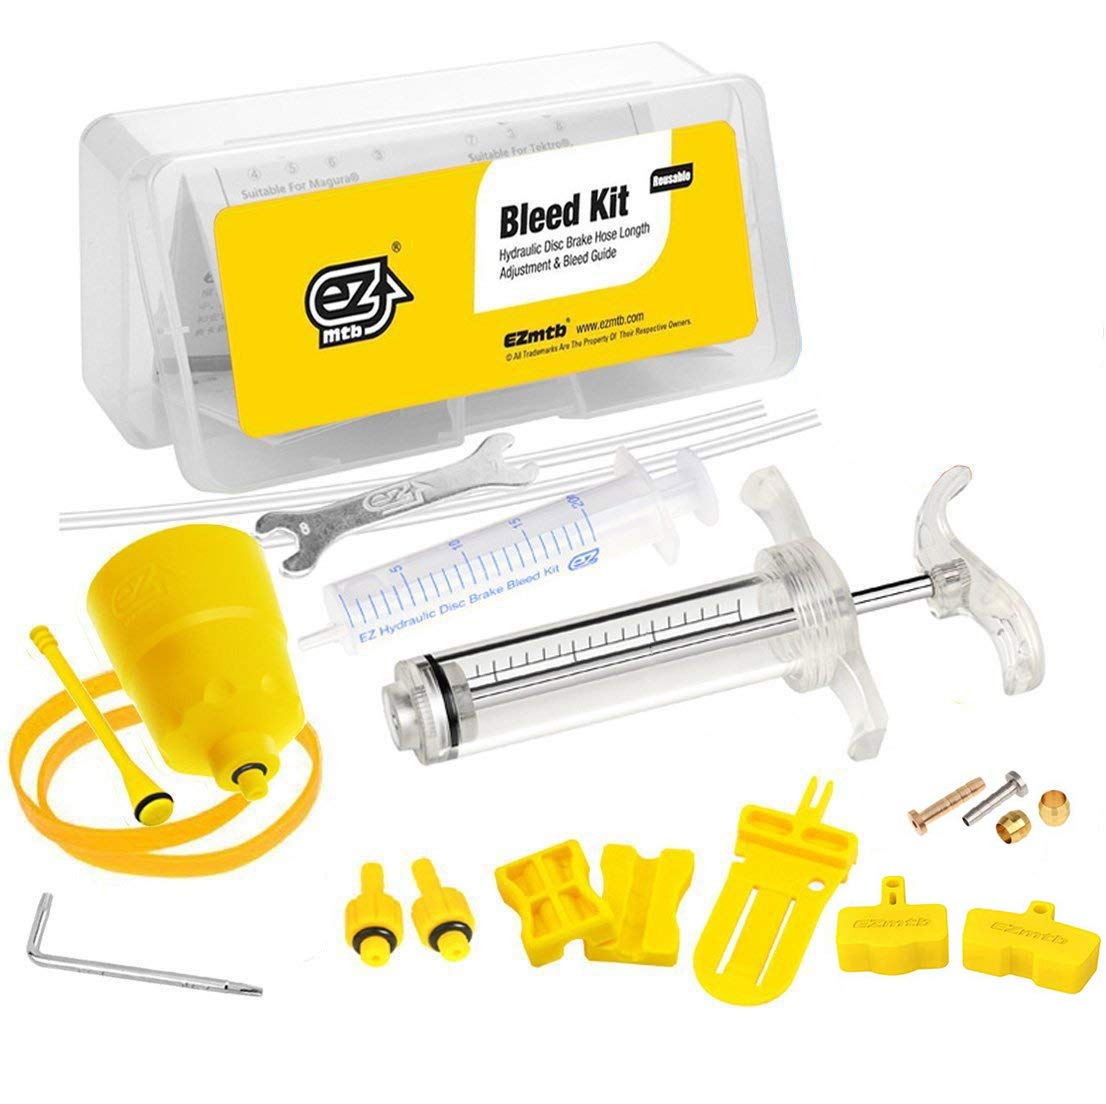 Revmega Hydraulic Mineral Disc Brake Bleed Kit Tool for Shimano - Fluid Not Included by Revmega